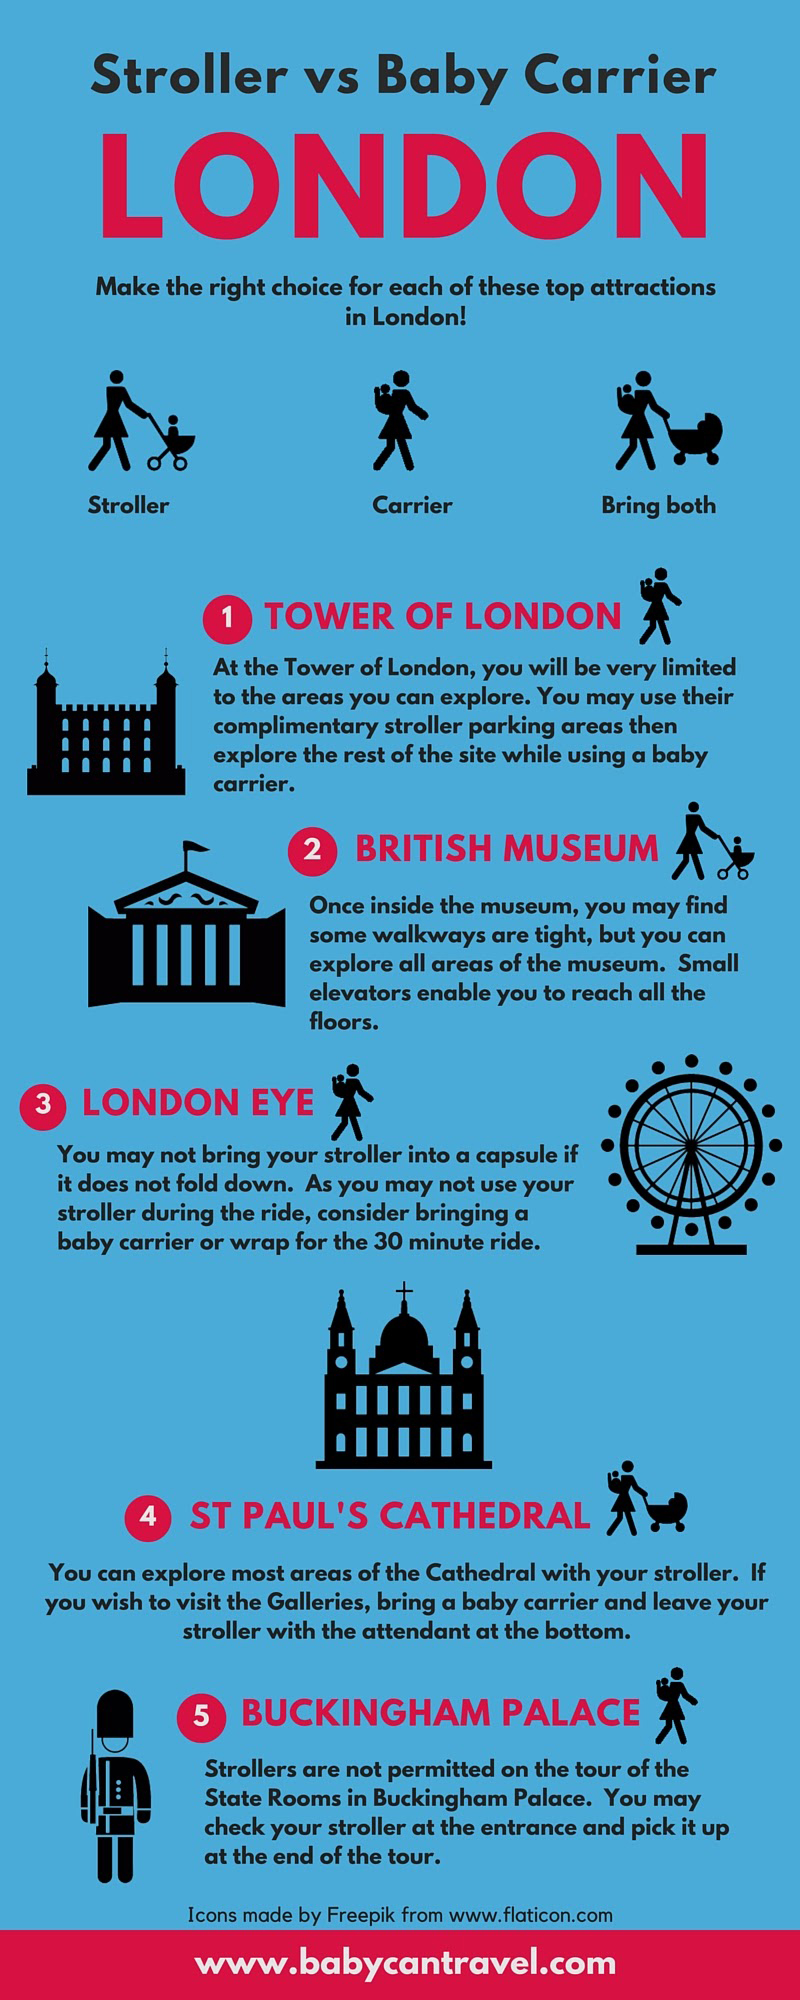 Visiting London with a baby? Some places are stroller friendly and some are best visited with a baby carrier. #travelwithbaby #babygear #stroller #babycarrier #babywearing #babytravel #toddlertravel #london #unitedkingdom